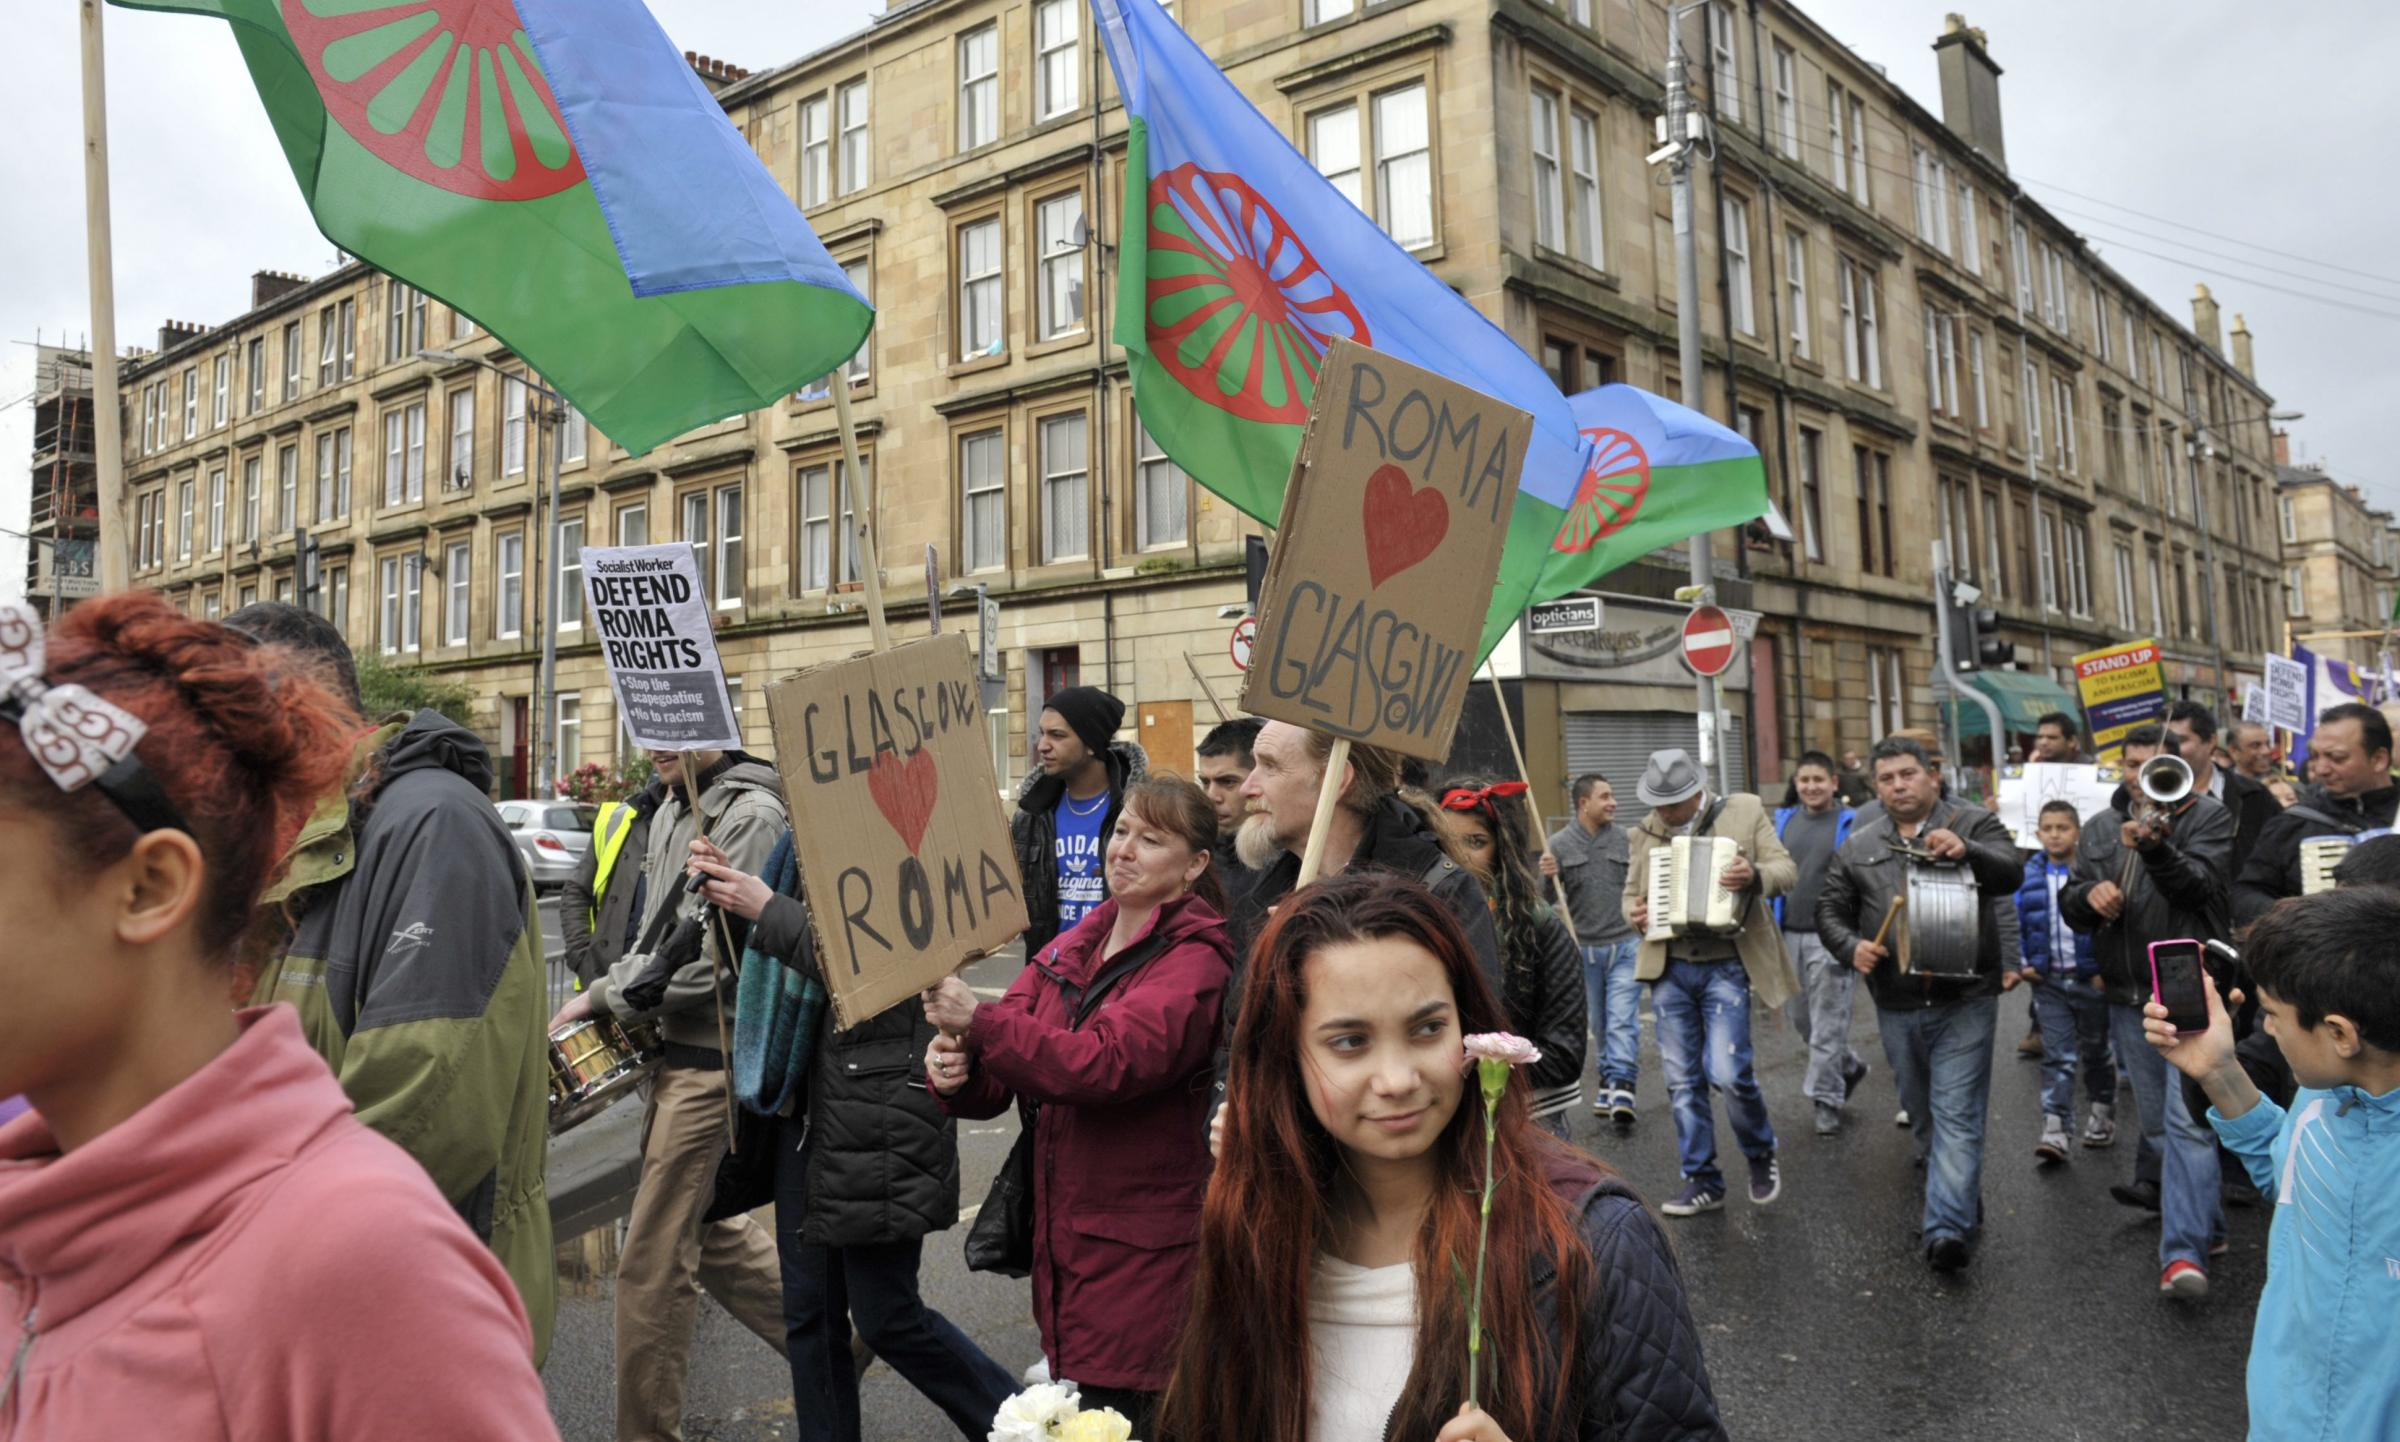 Brexit's impact on xenophobia is an issue we cannot ignore in Scotland